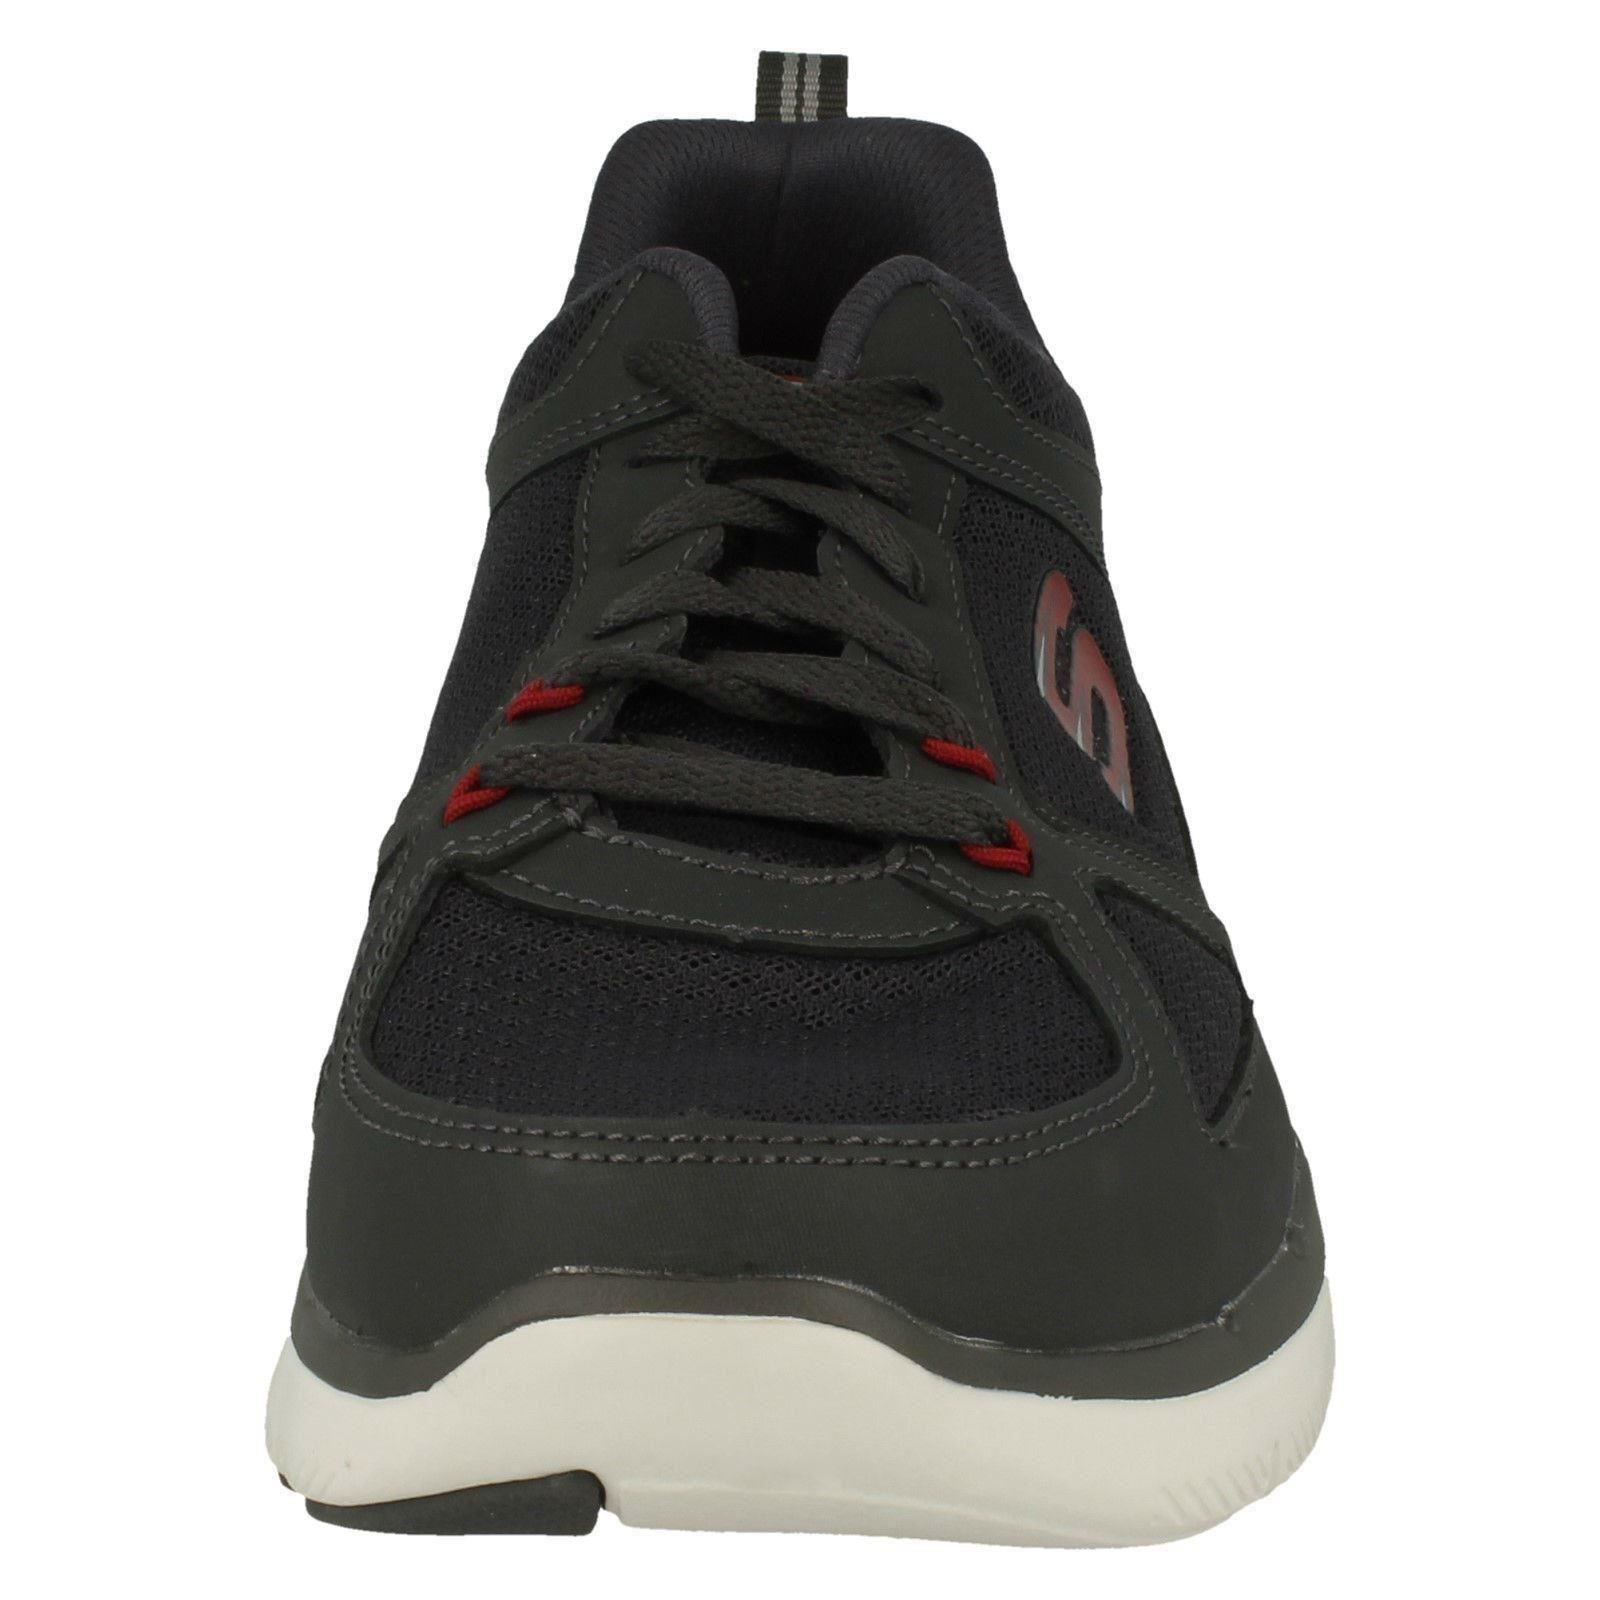 'Mens Casual Skechers' Casual 'Mens Trainers - Lindman 52189 927d33